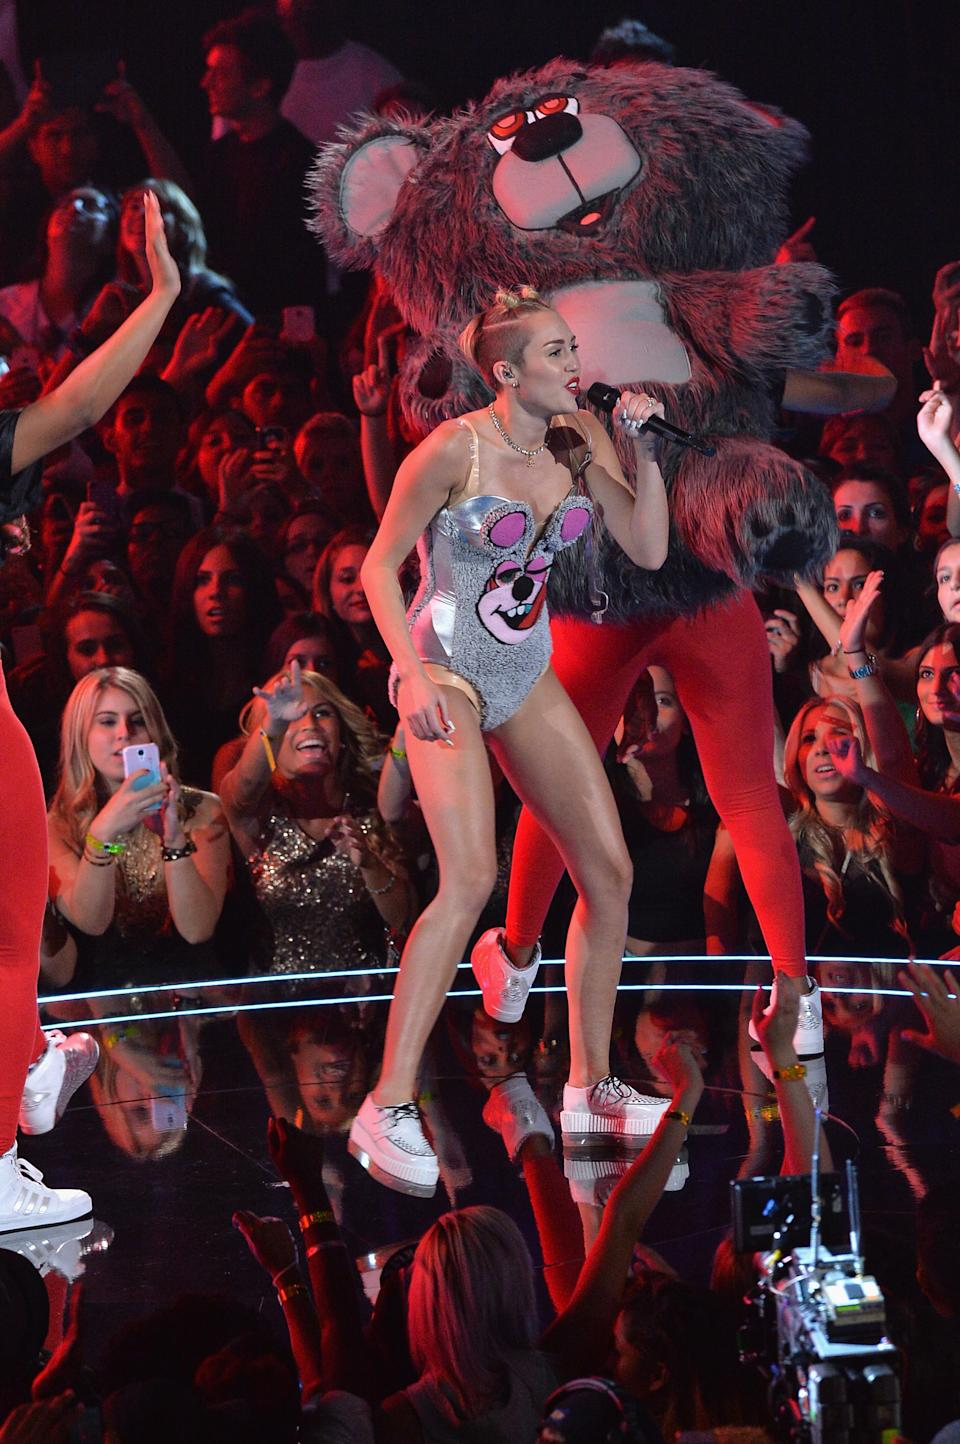 NEW YORK, NY - AUGUST 25:  Miley Cyrus performs onstage during the 2013 MTV Video Music Awards at the Barclays Center on August 25, 2013 in the Brooklyn borough of New York City.  (Photo by Rick Diamond/Getty Images for MTV)